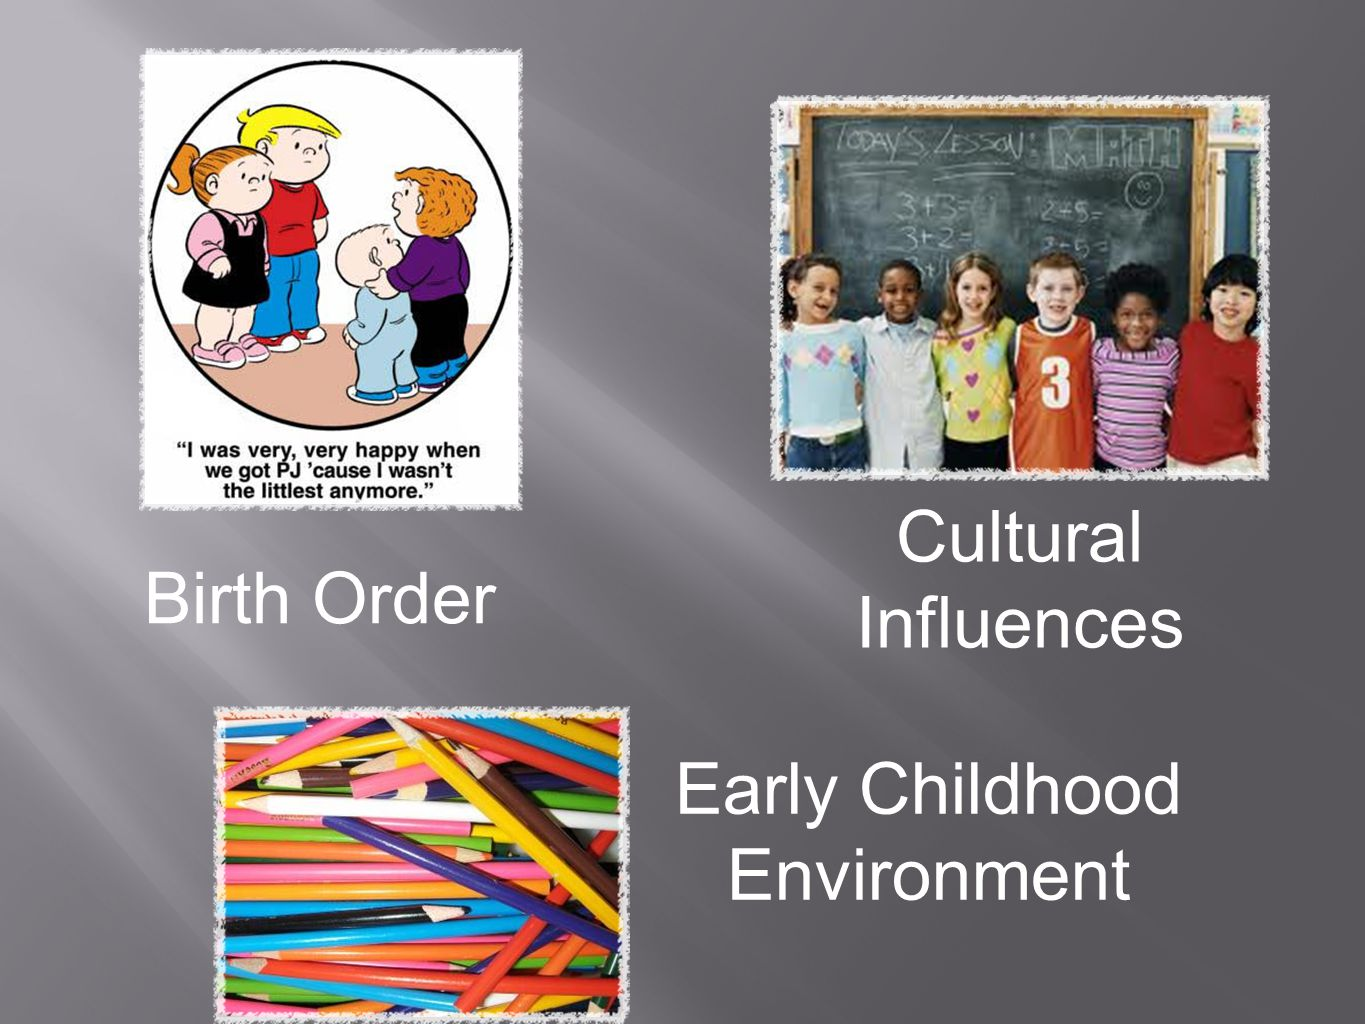 They Come to School Varying in: Experience Enrichment Exposure Education opportunities Expectations